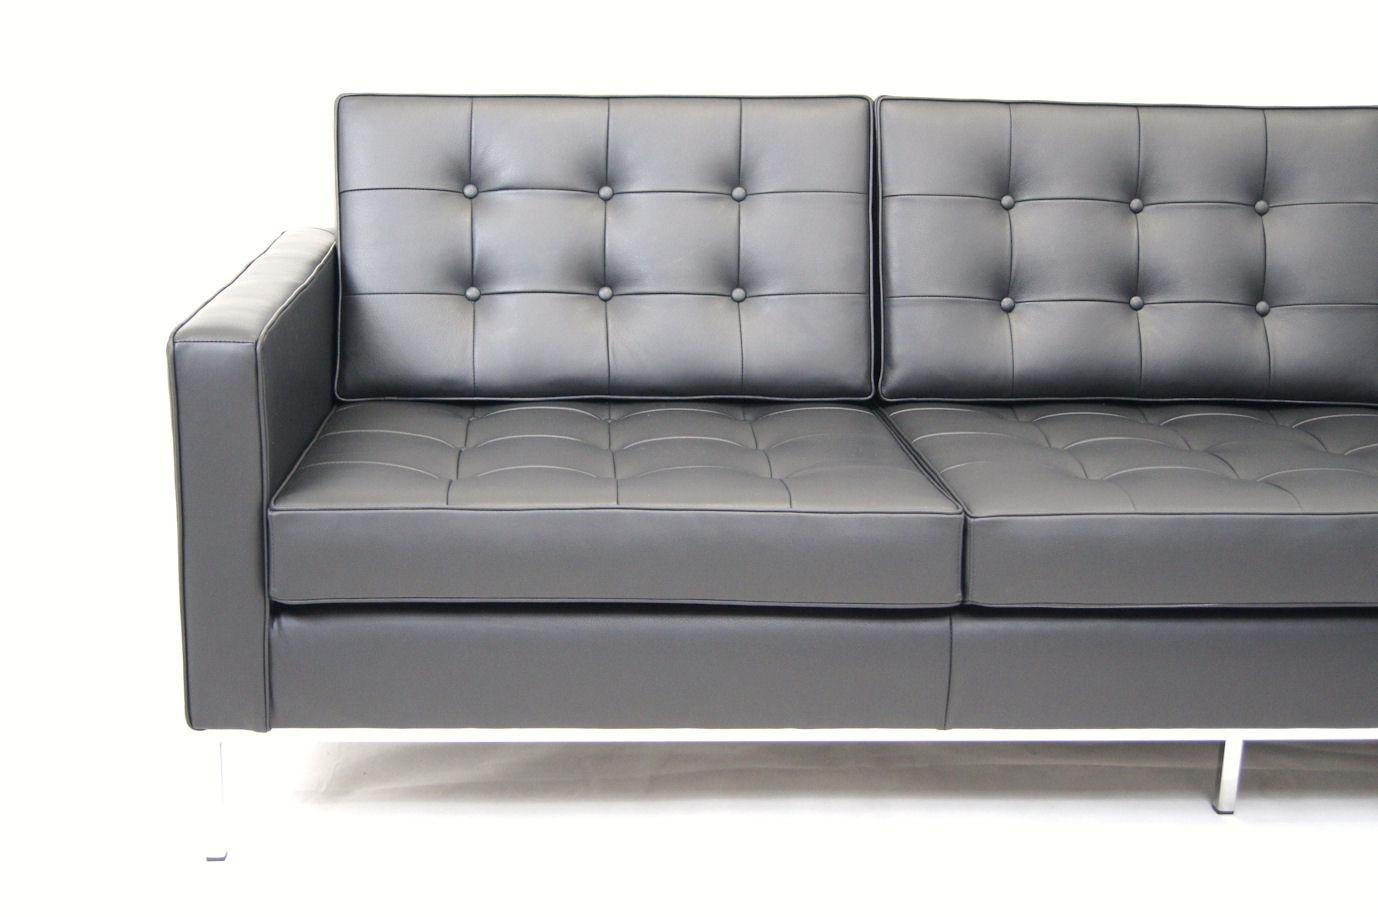 Decoration Knoll Florence Sofa With Florence Knoll Sofa Florence In Florence Knoll Leather Sofas (Image 1 of 20)